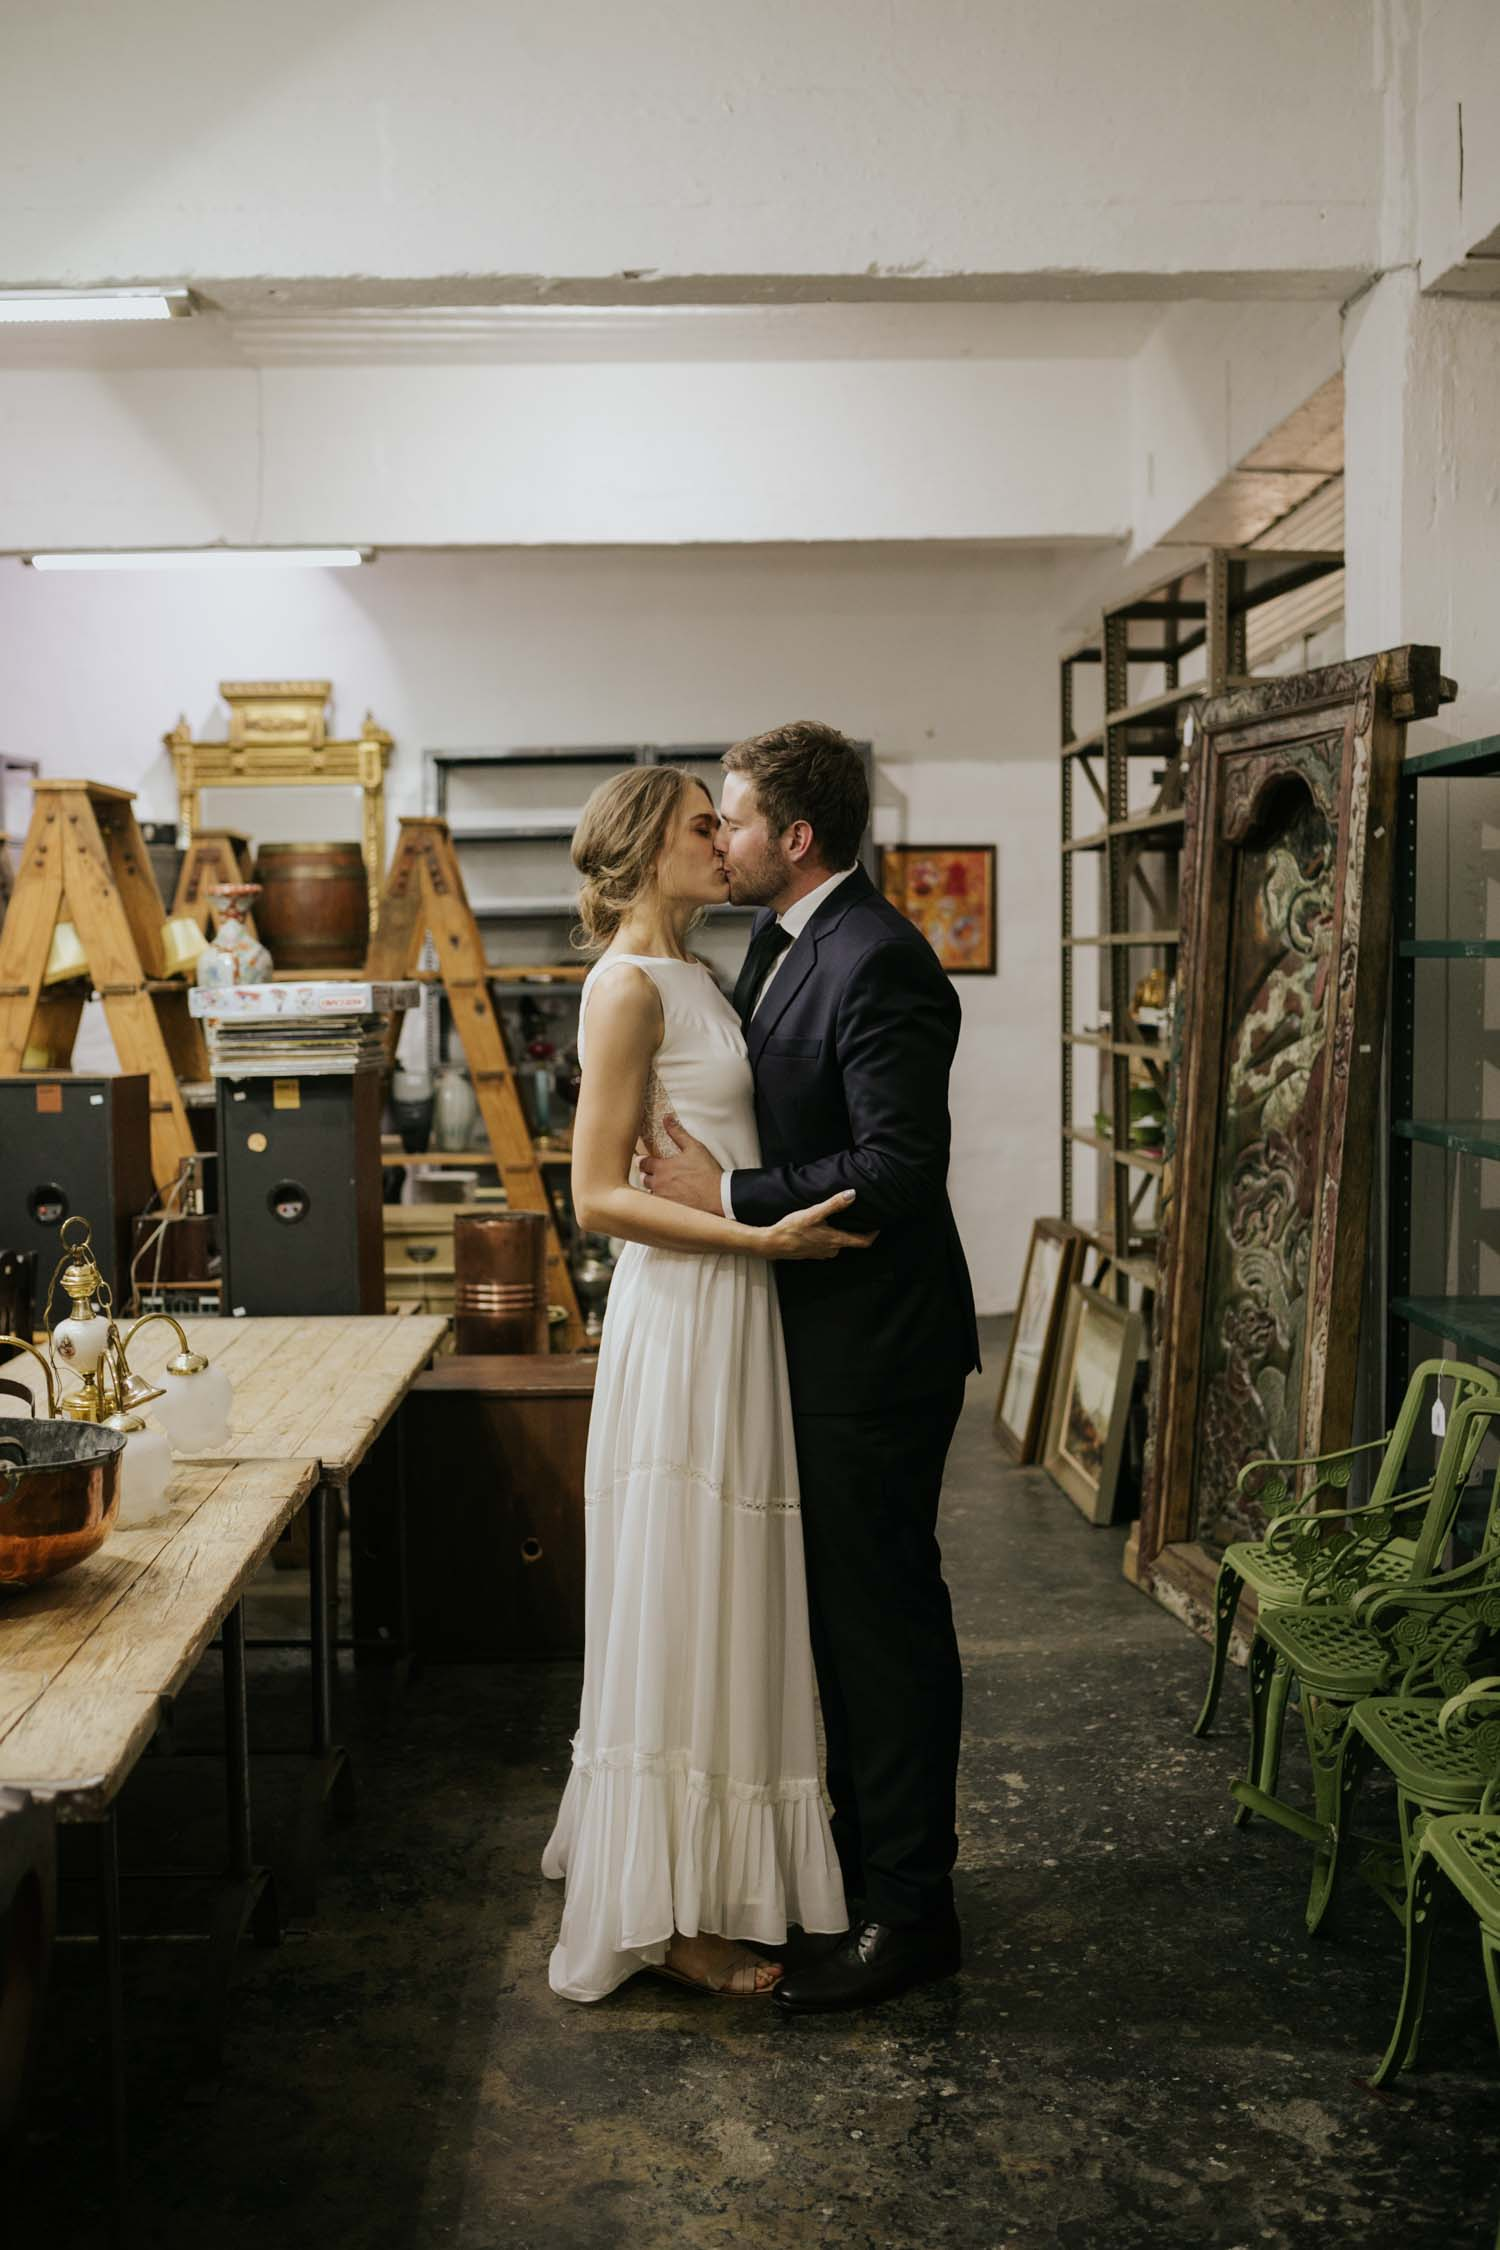 Alternative Location For Couple Wedding Photography Session In Old Vancouver Warehouse